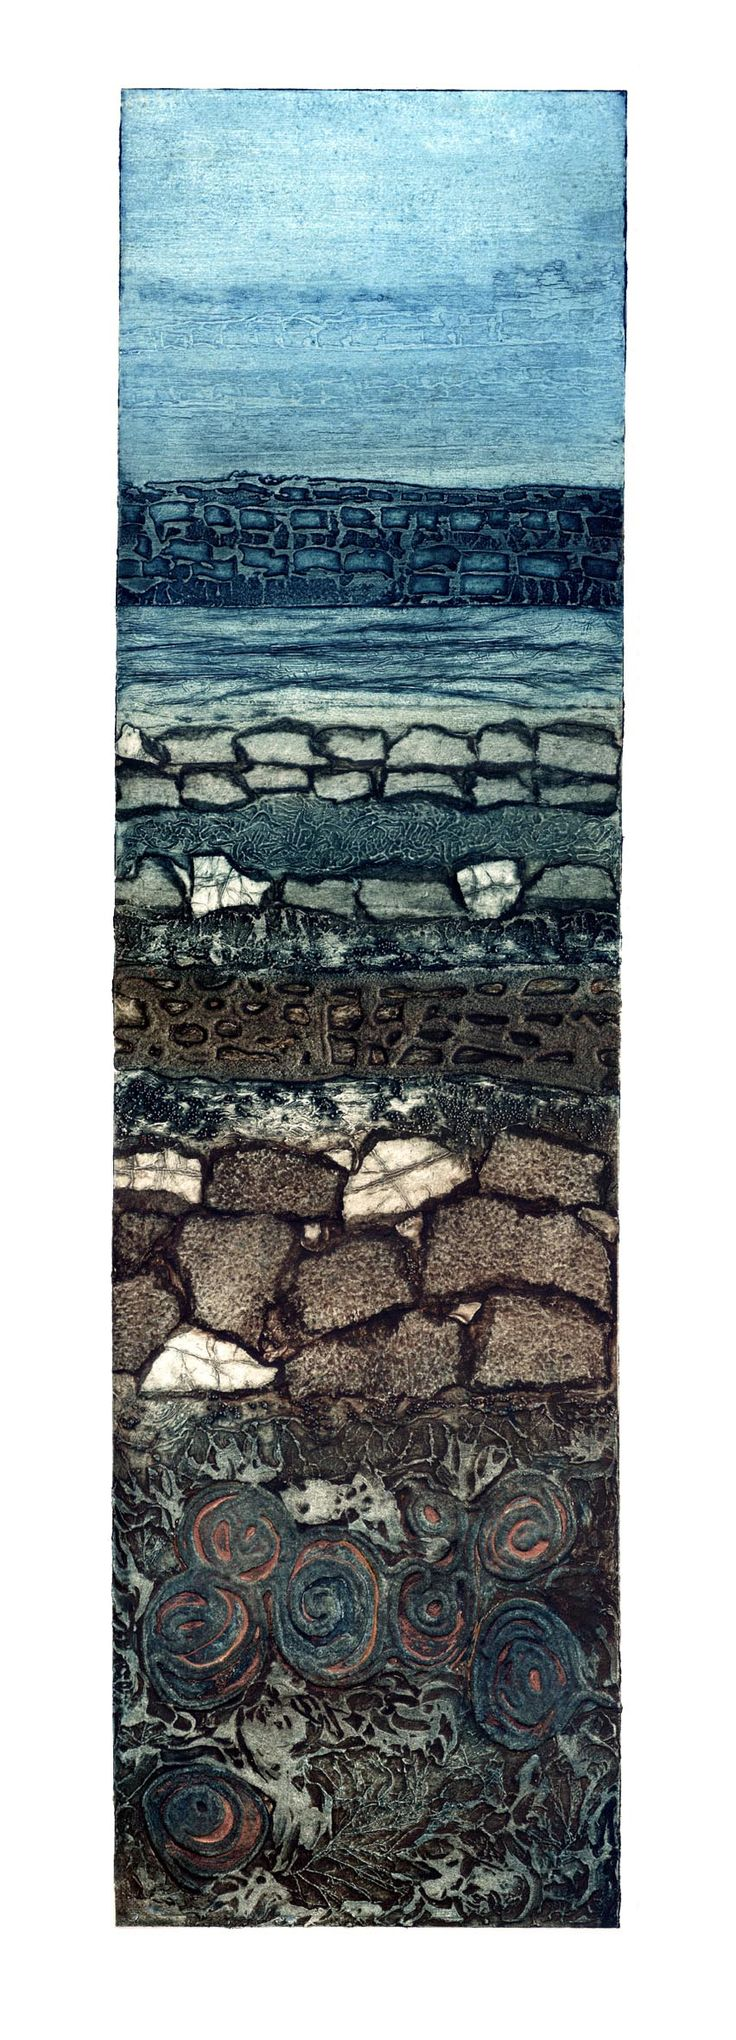 Sue Lowe 'Kilve VI' Collagraph print. One of a series inspired by the unique…